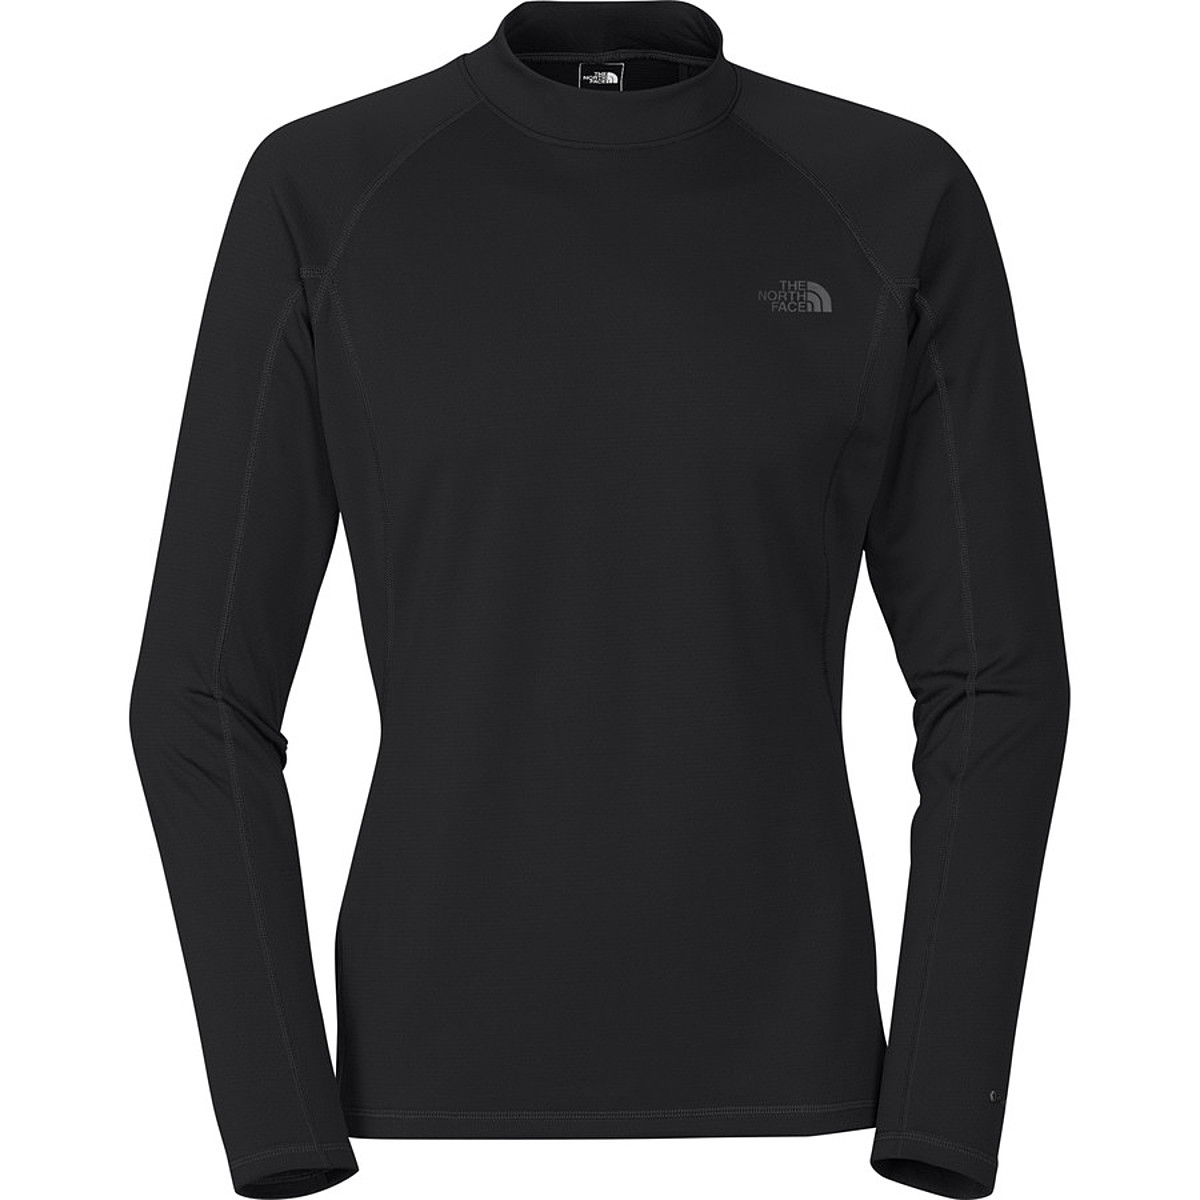 The North Face Warm Long-Sleeve Mock Neck